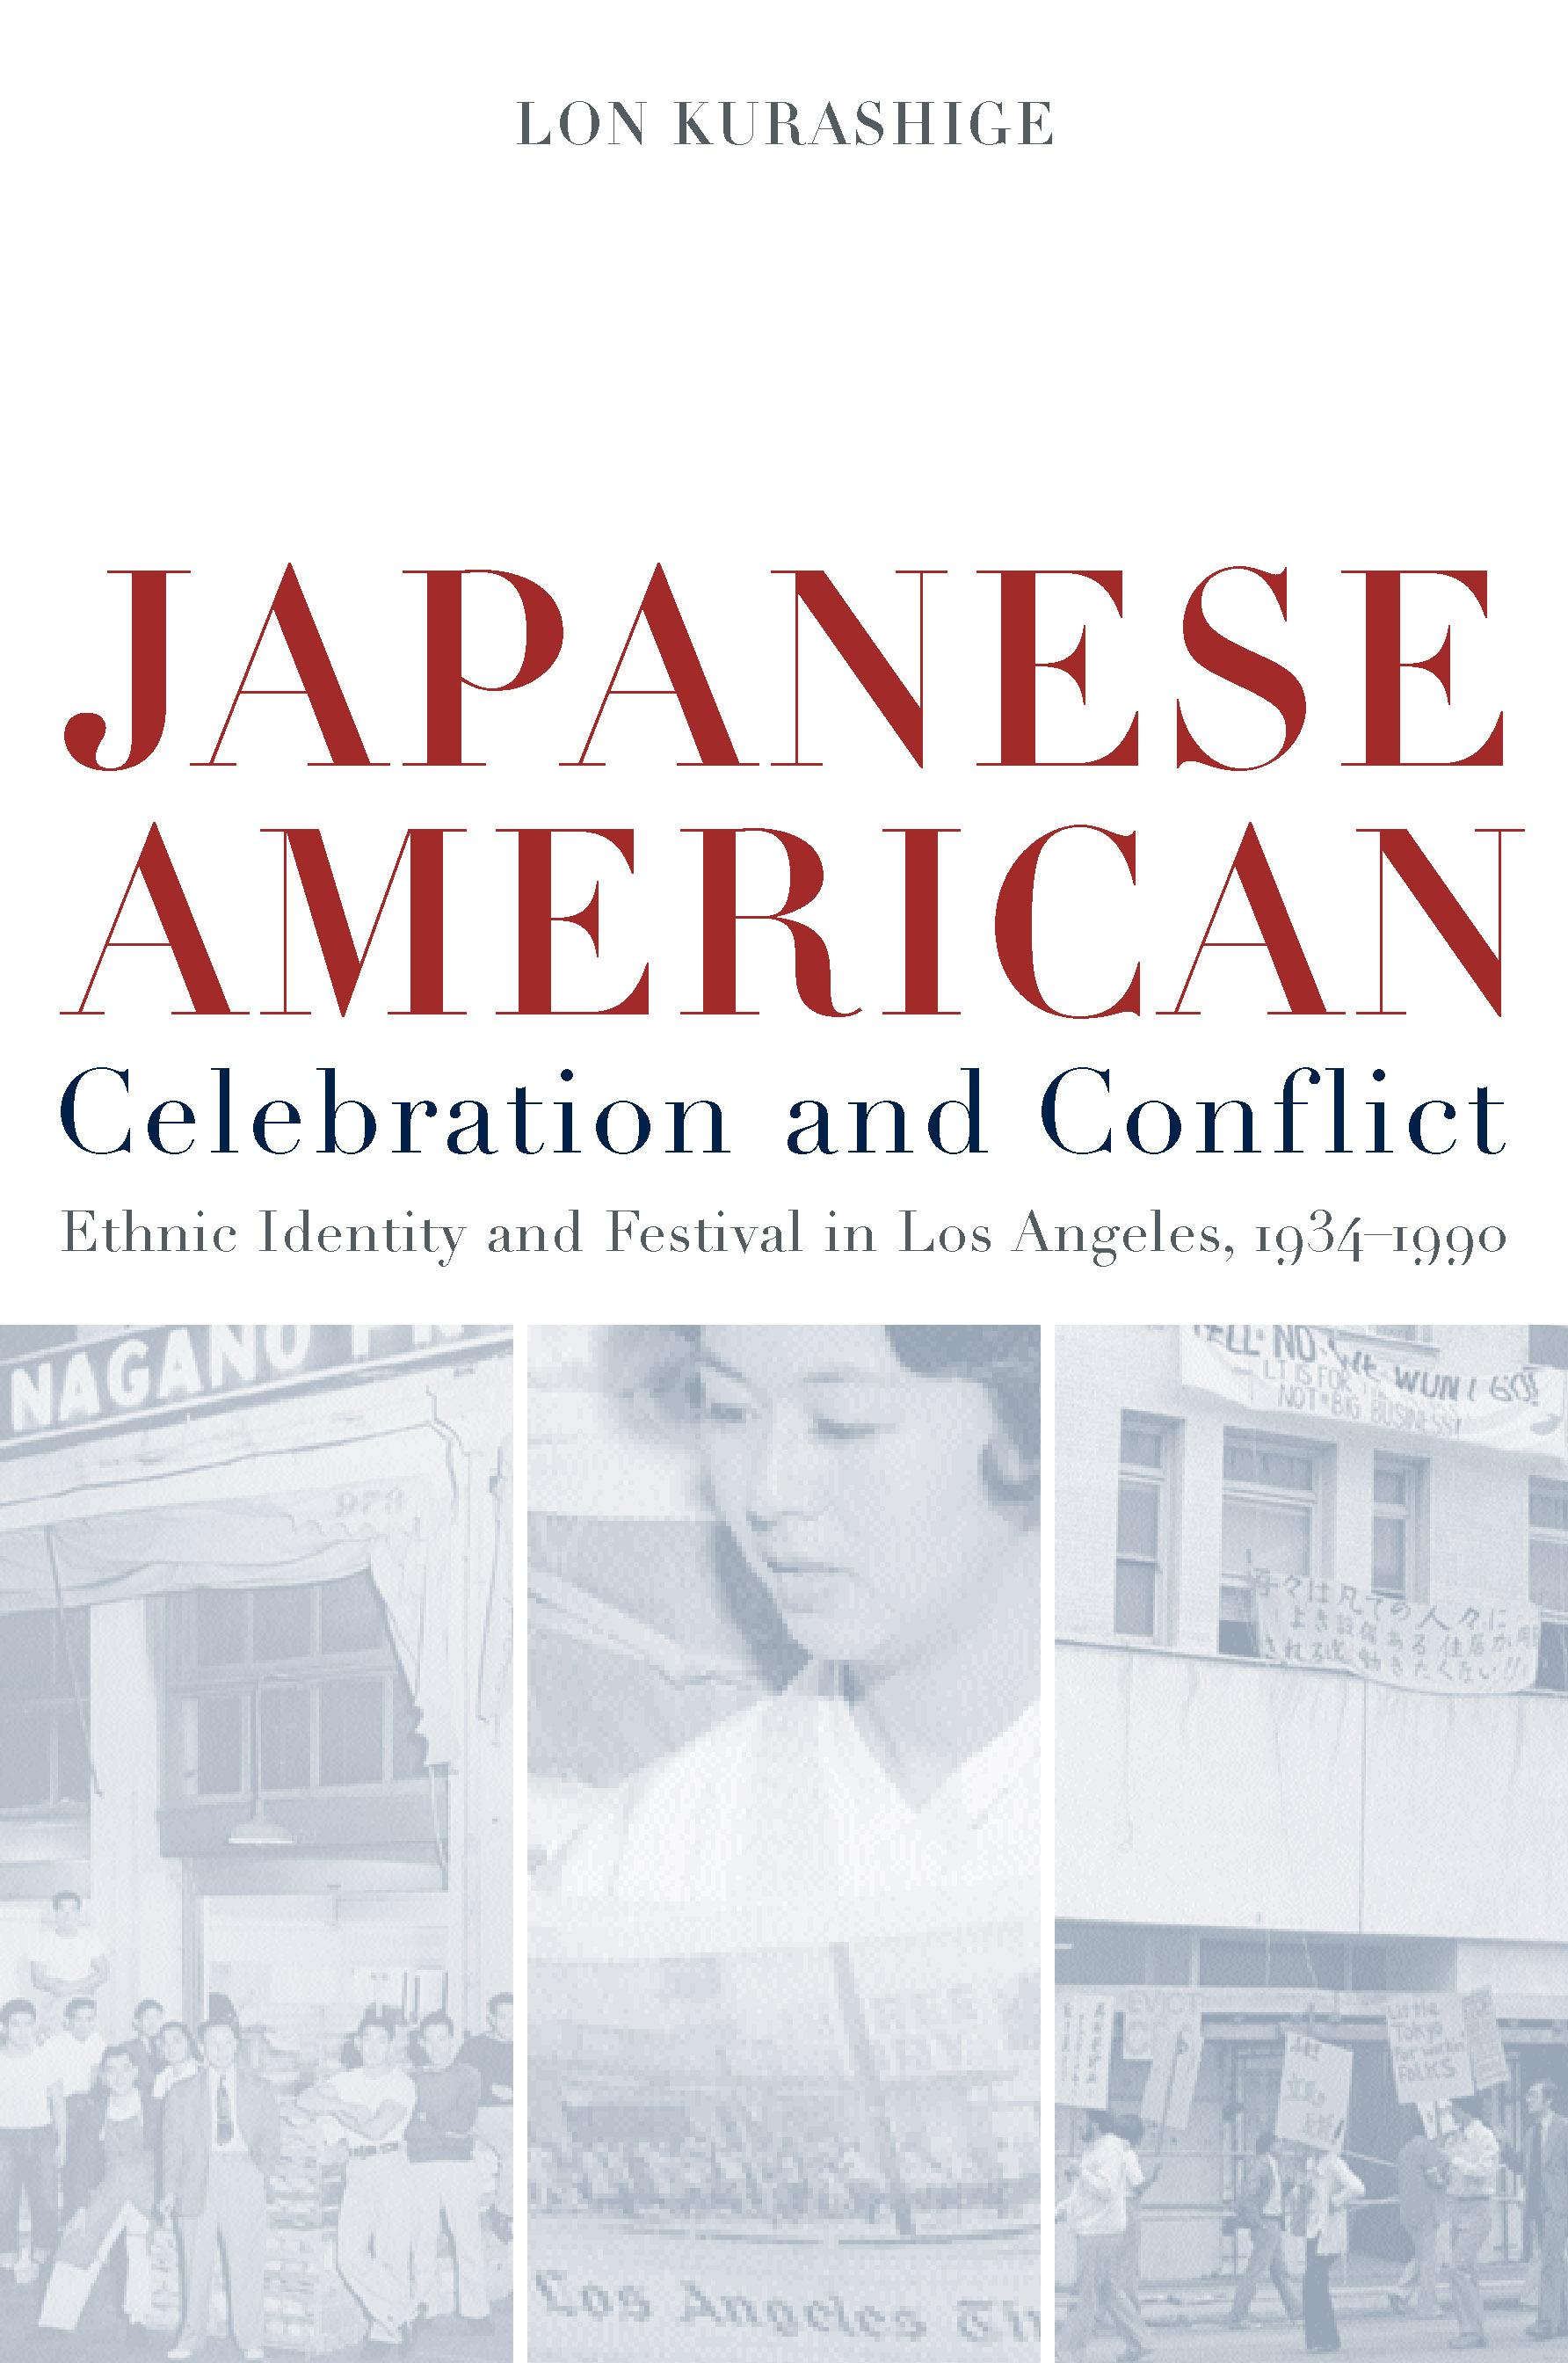 Japanese American Celebration and Conflict: A History of Ethnic Identity and Festival, 1934-1990 EB9780520926479